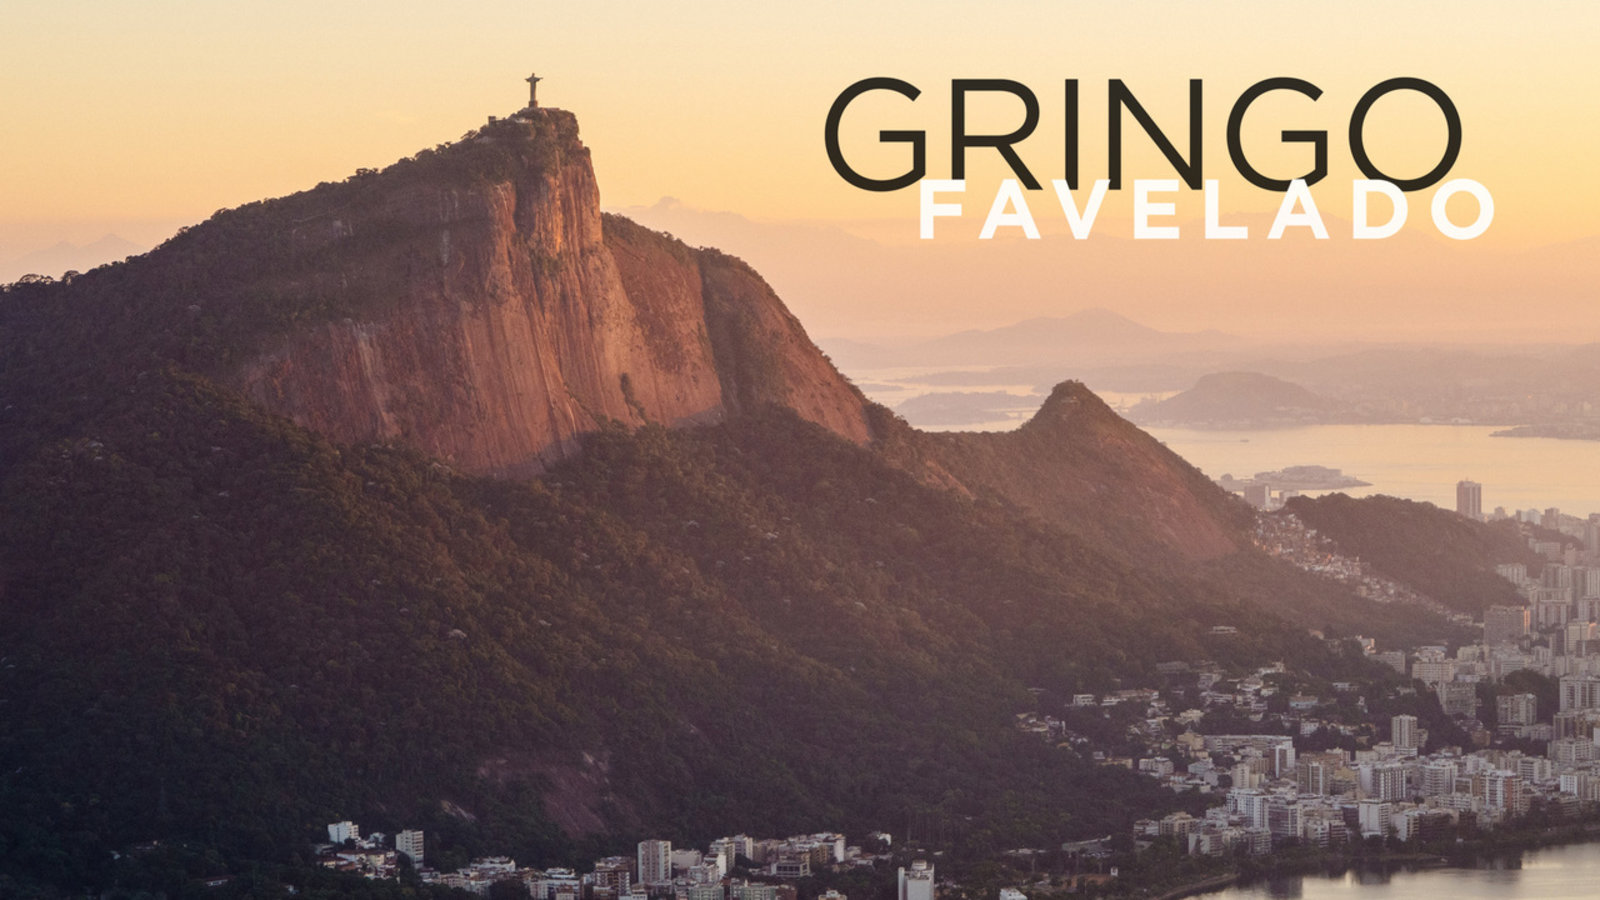 Gringo Favelado - British Expats Living in Brazilian Favela Communities